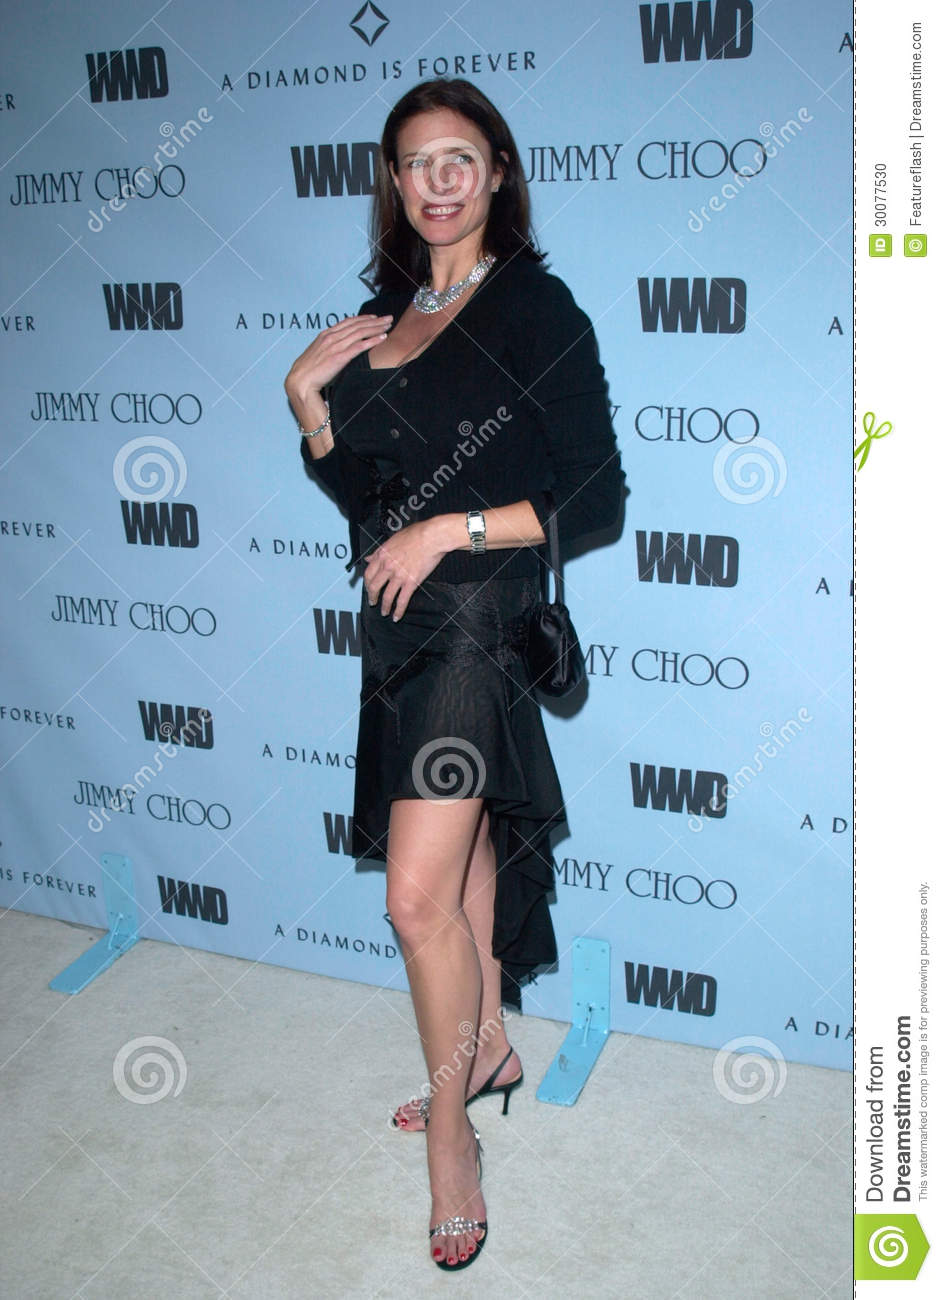 Discussion on this topic: Andrea Cerna, mimi-rogers/